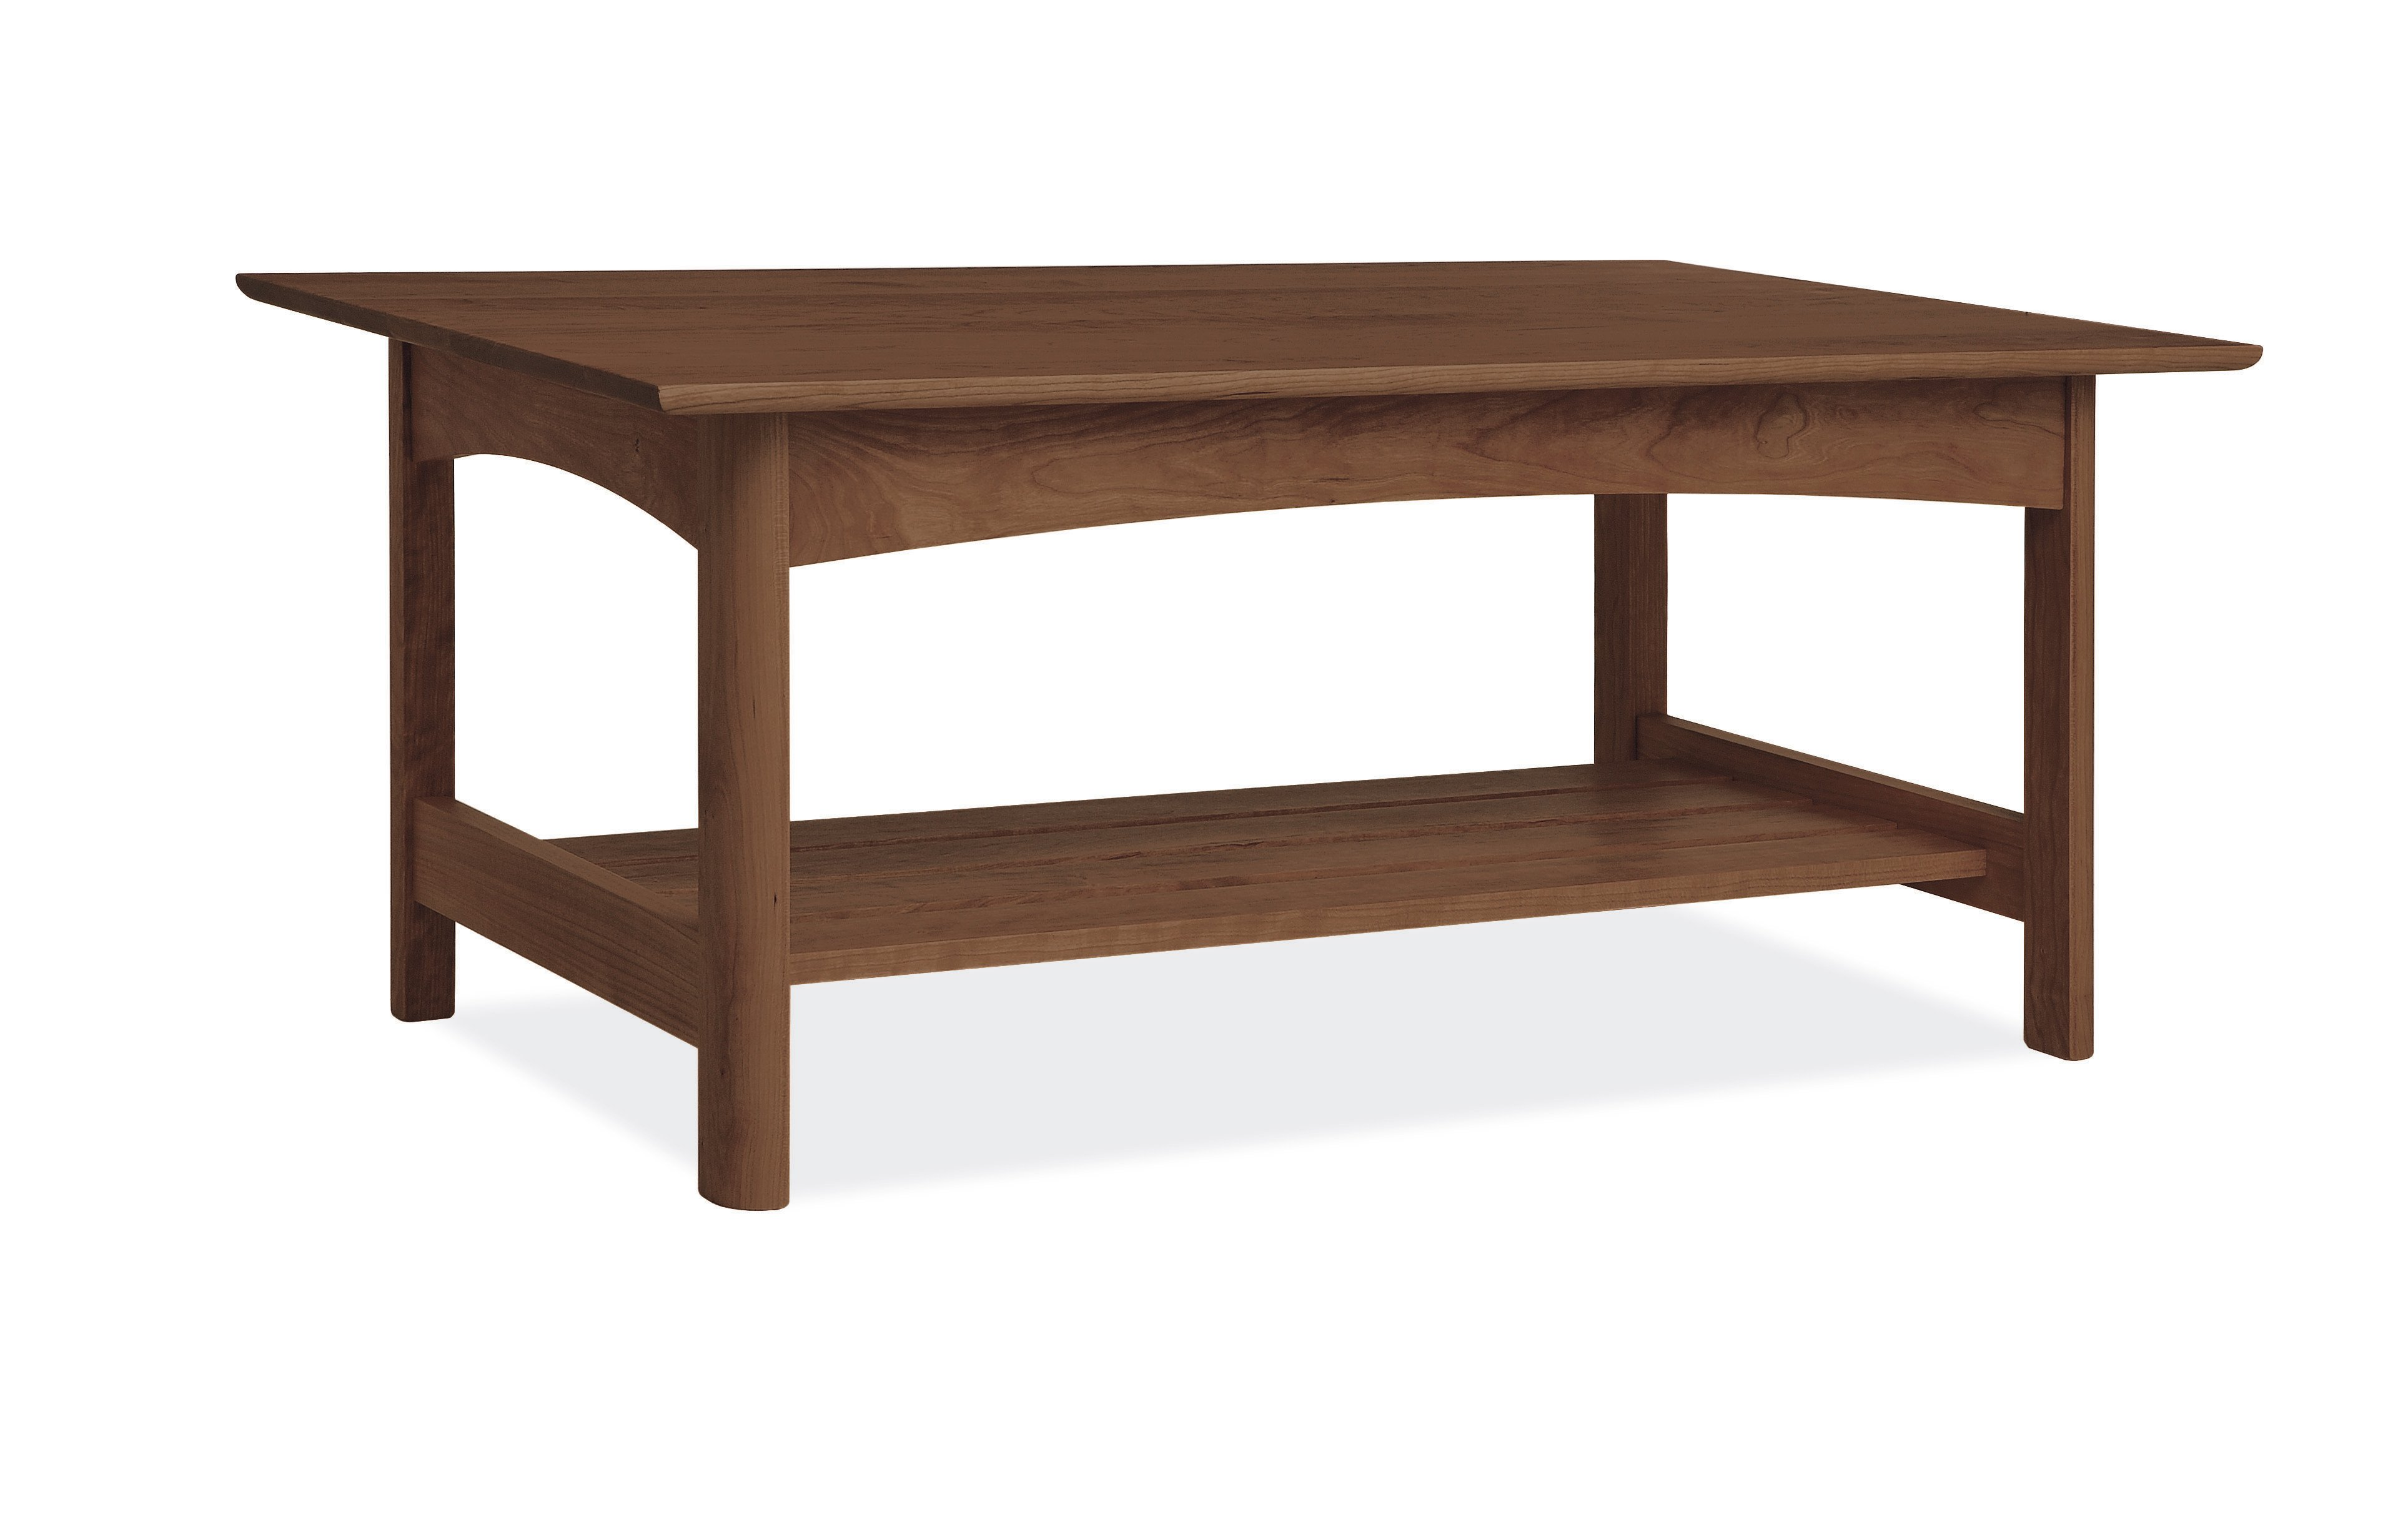 - Craftsman Wood Coffee Table By Vermont Handcrafted Furniture